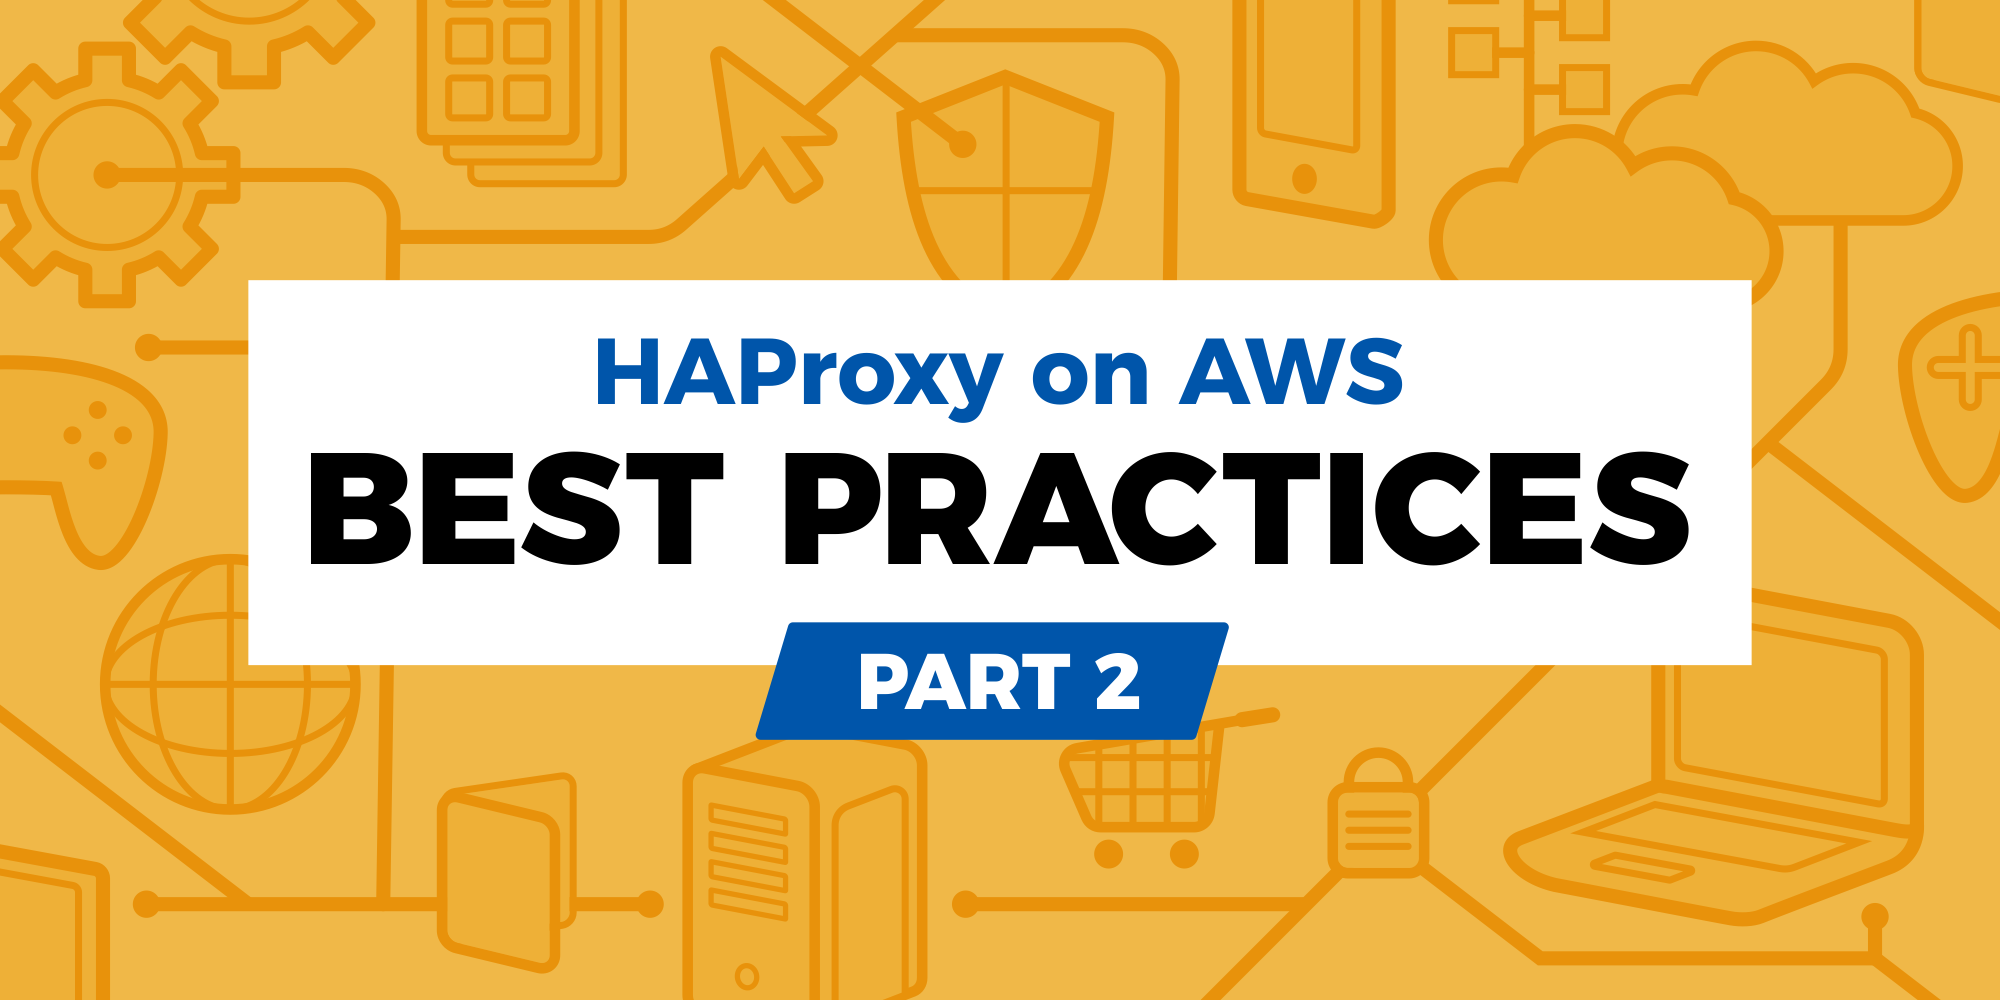 HAProxy on AWS: Best Practices Part 2 - HAProxy Technologies